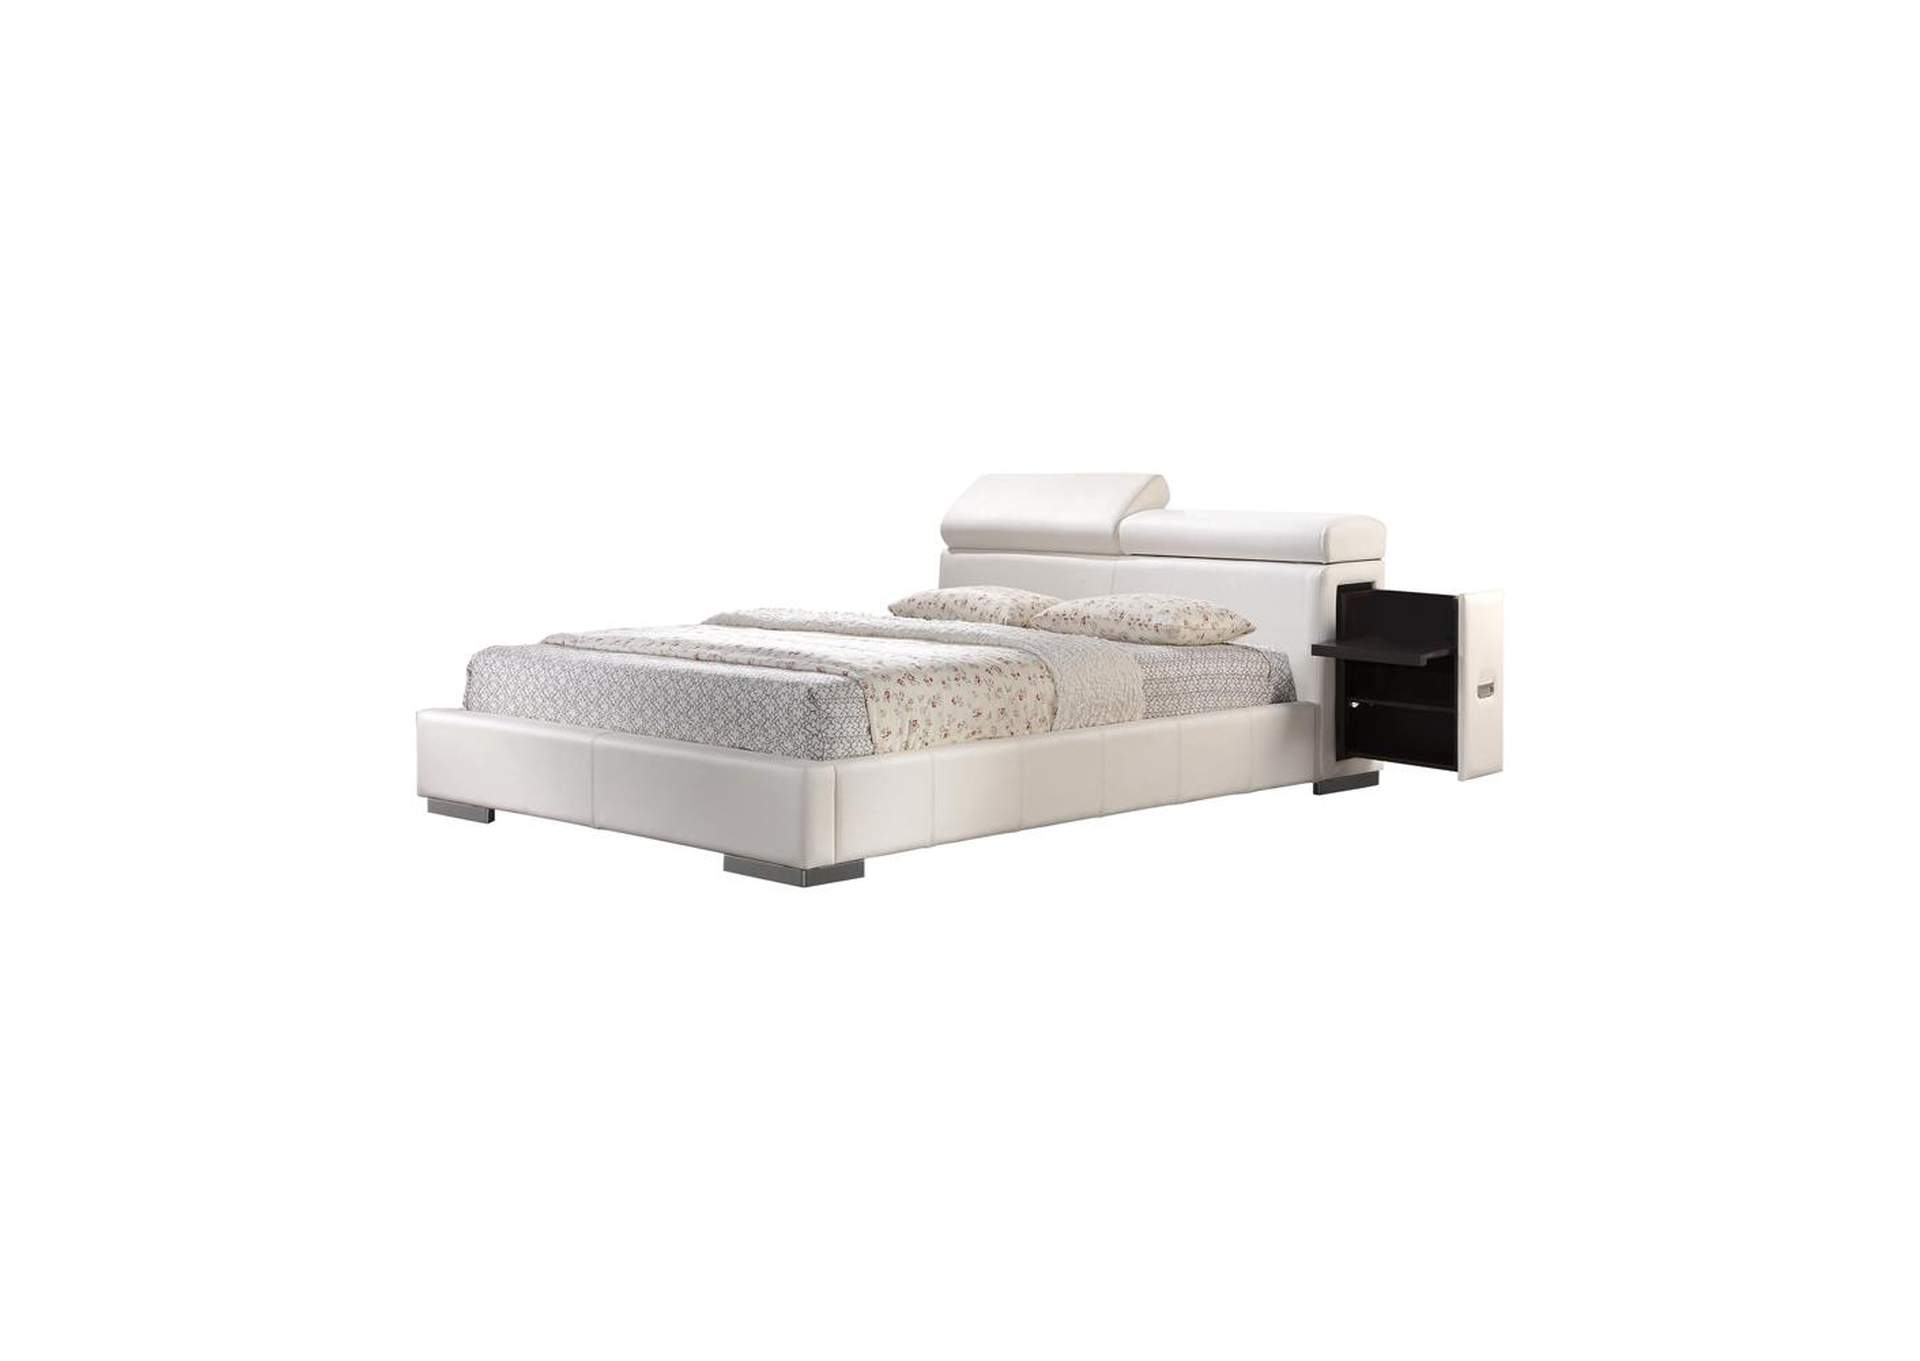 Swiss Coffee Maxine Upholstered Queen Bed White,Coaster Furniture